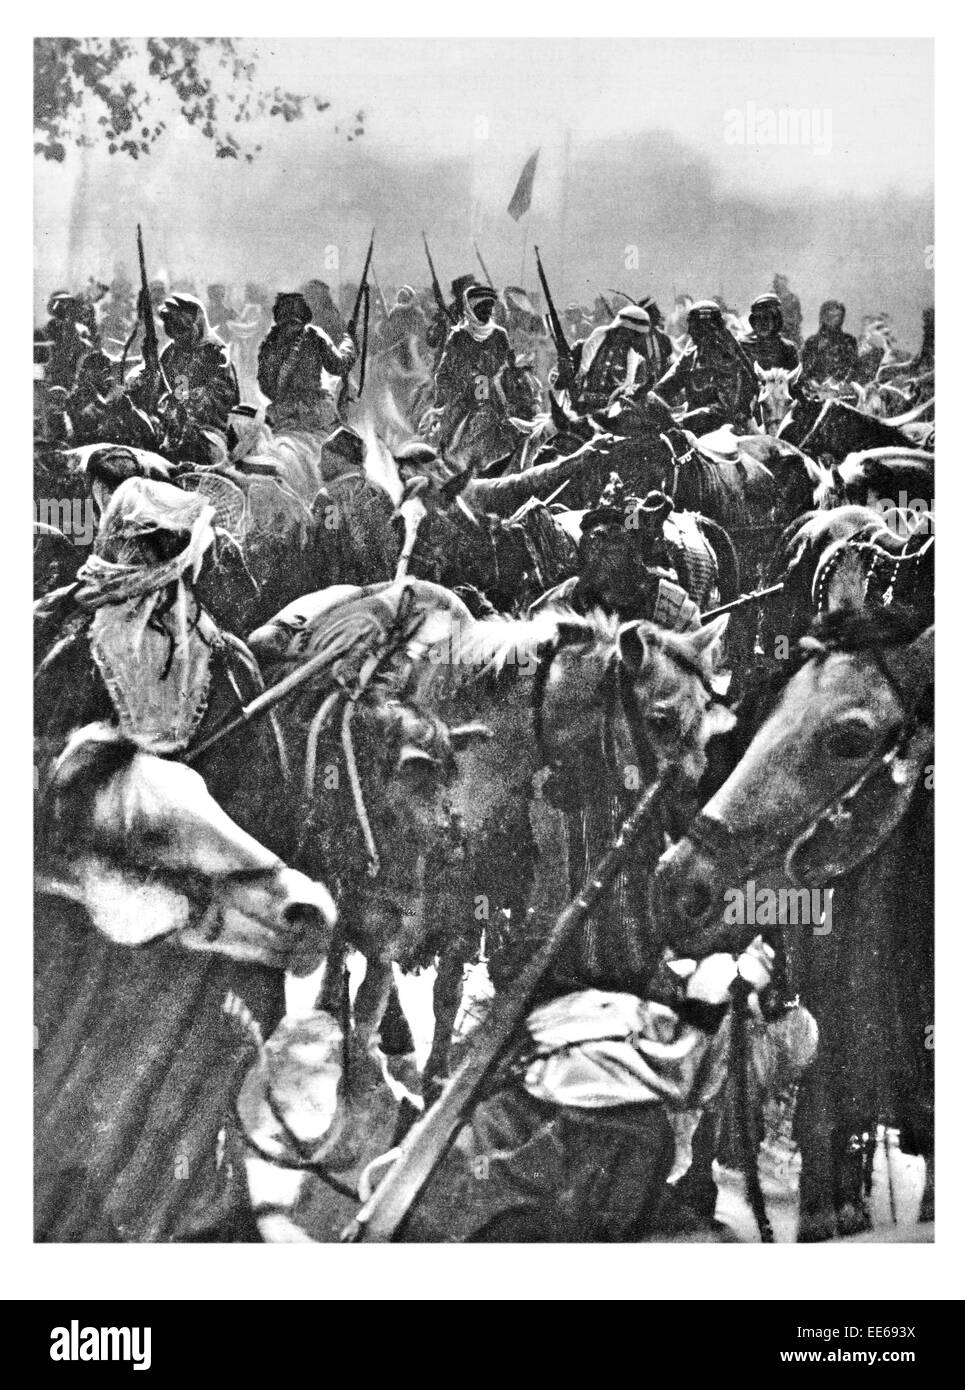 Entering Damascus Lawrence of Arabia Arab Revolt Ottoman Turkish portrait Arabian Syria horse cavalry rifle soldier - Stock Image